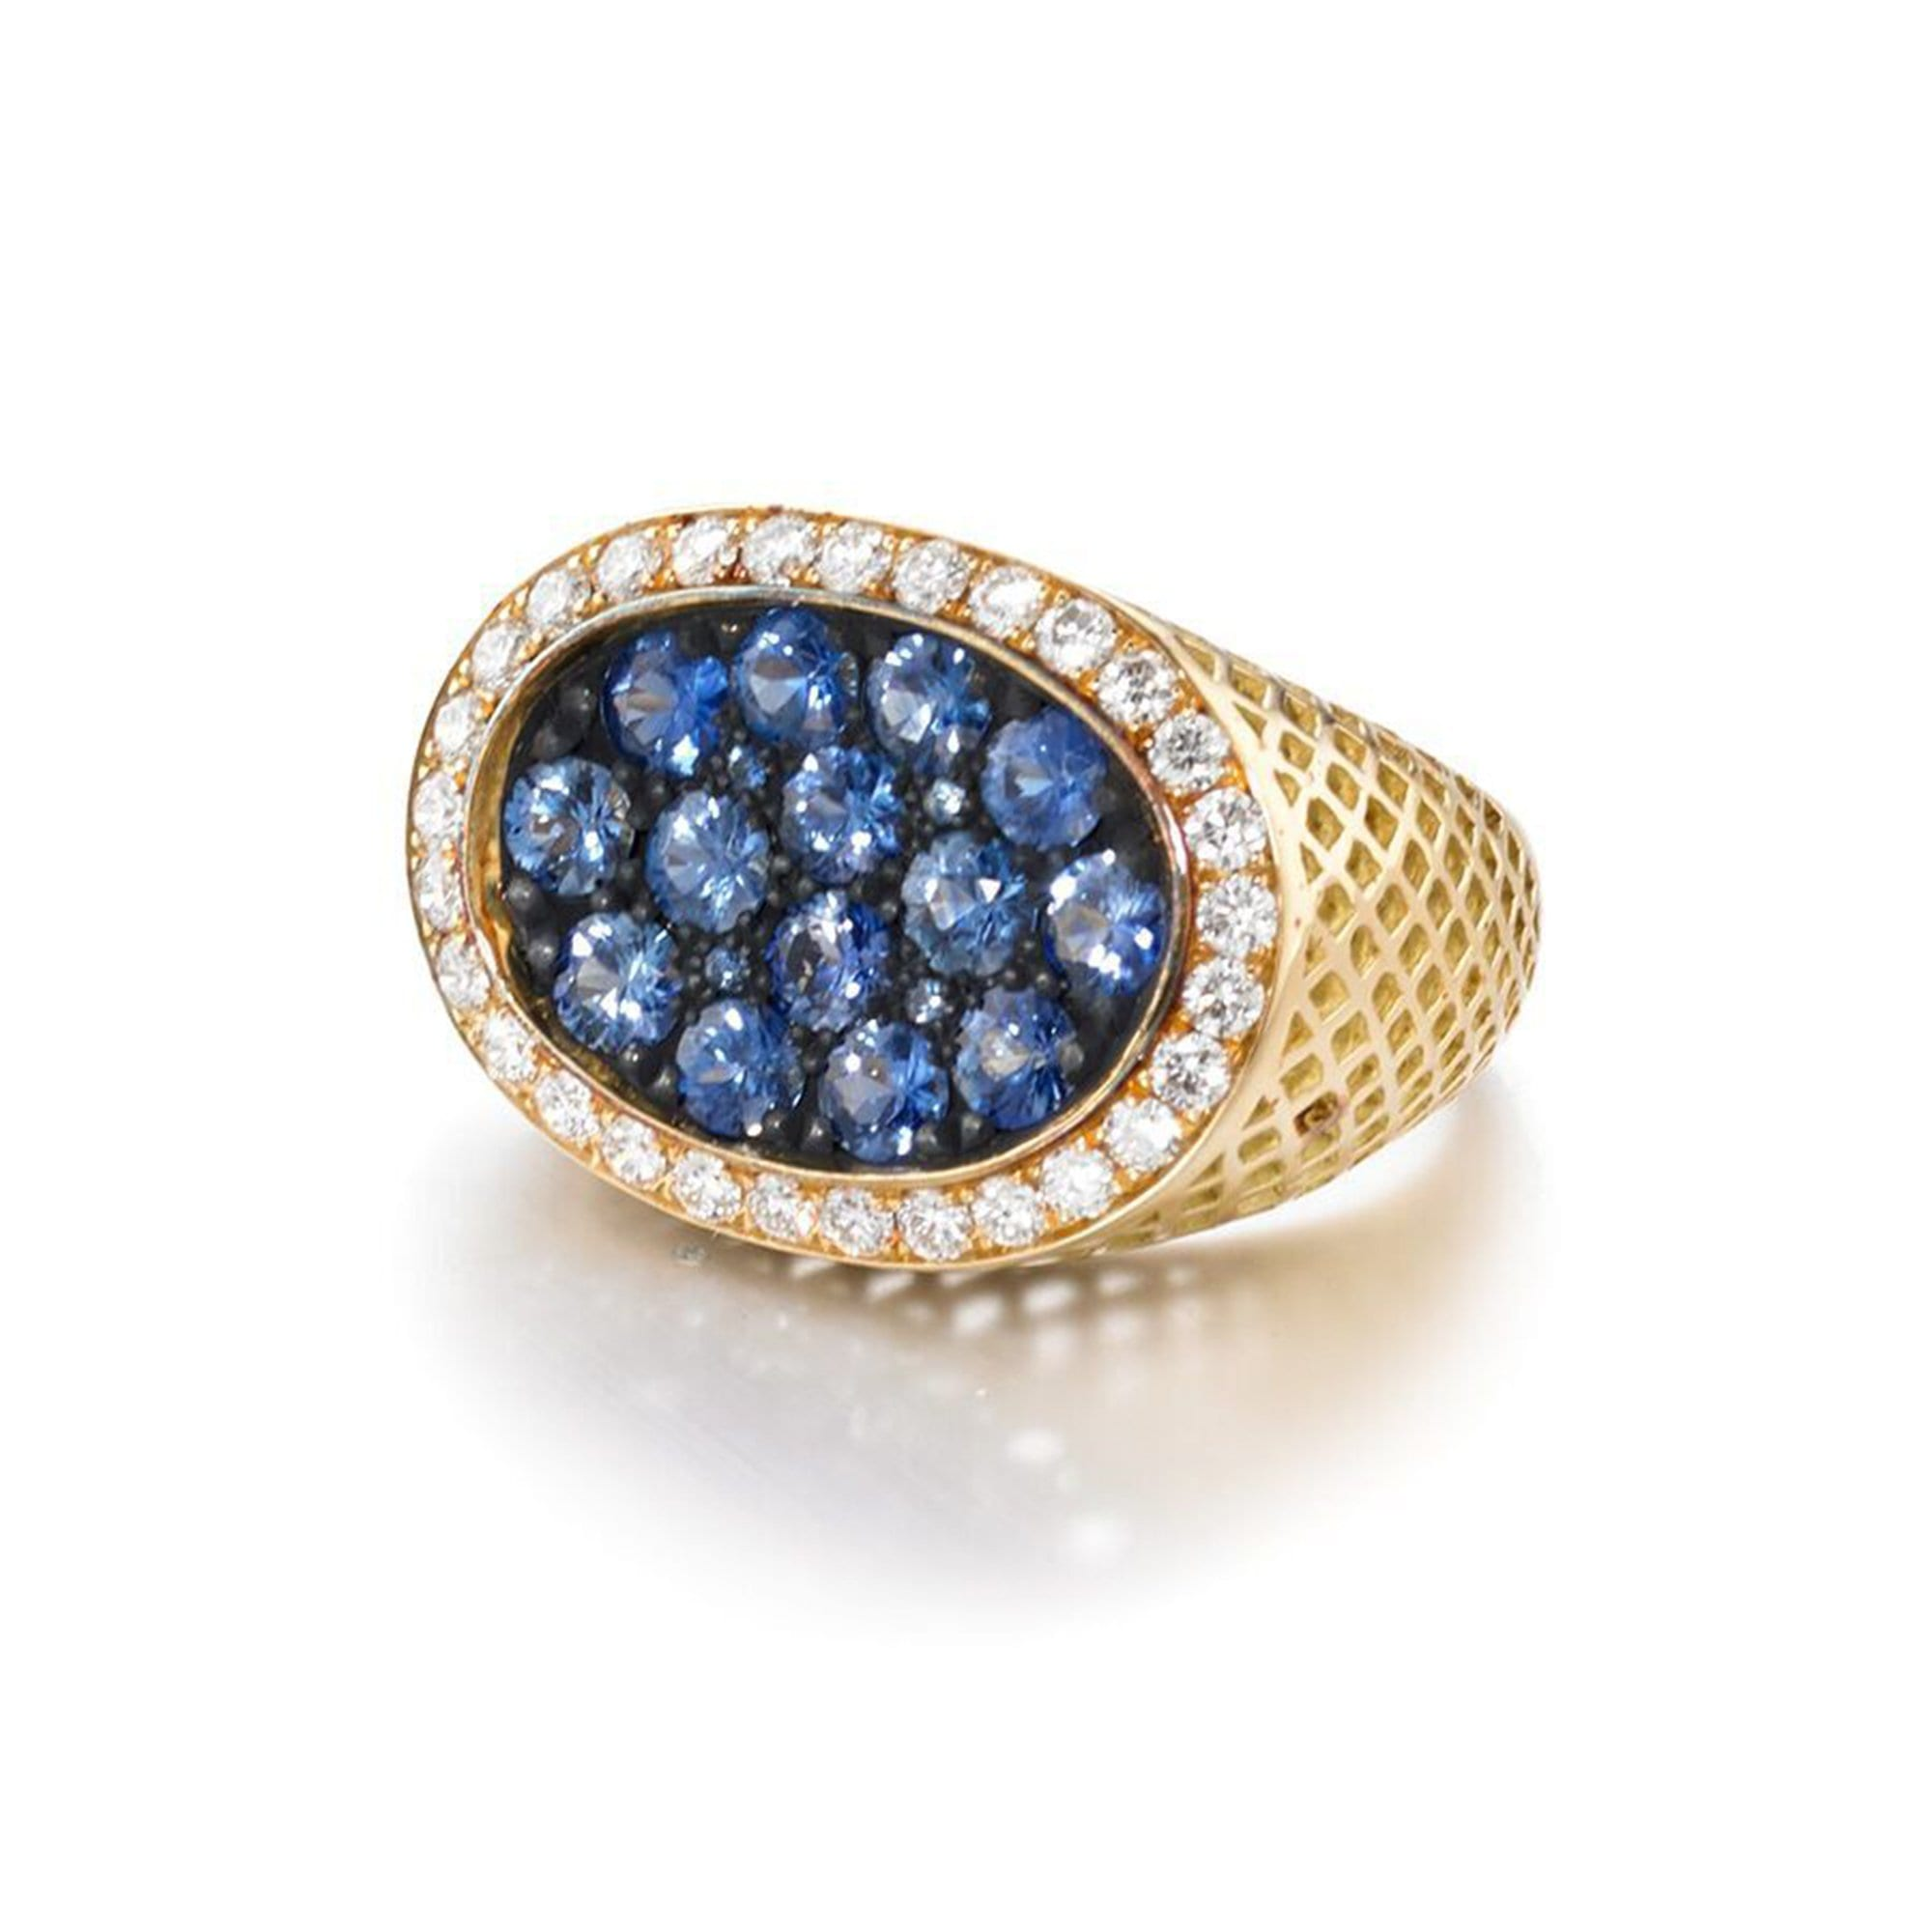 Vincents Fine Jewelry | Ray Griffiths | Sapphire Cocktail Ring